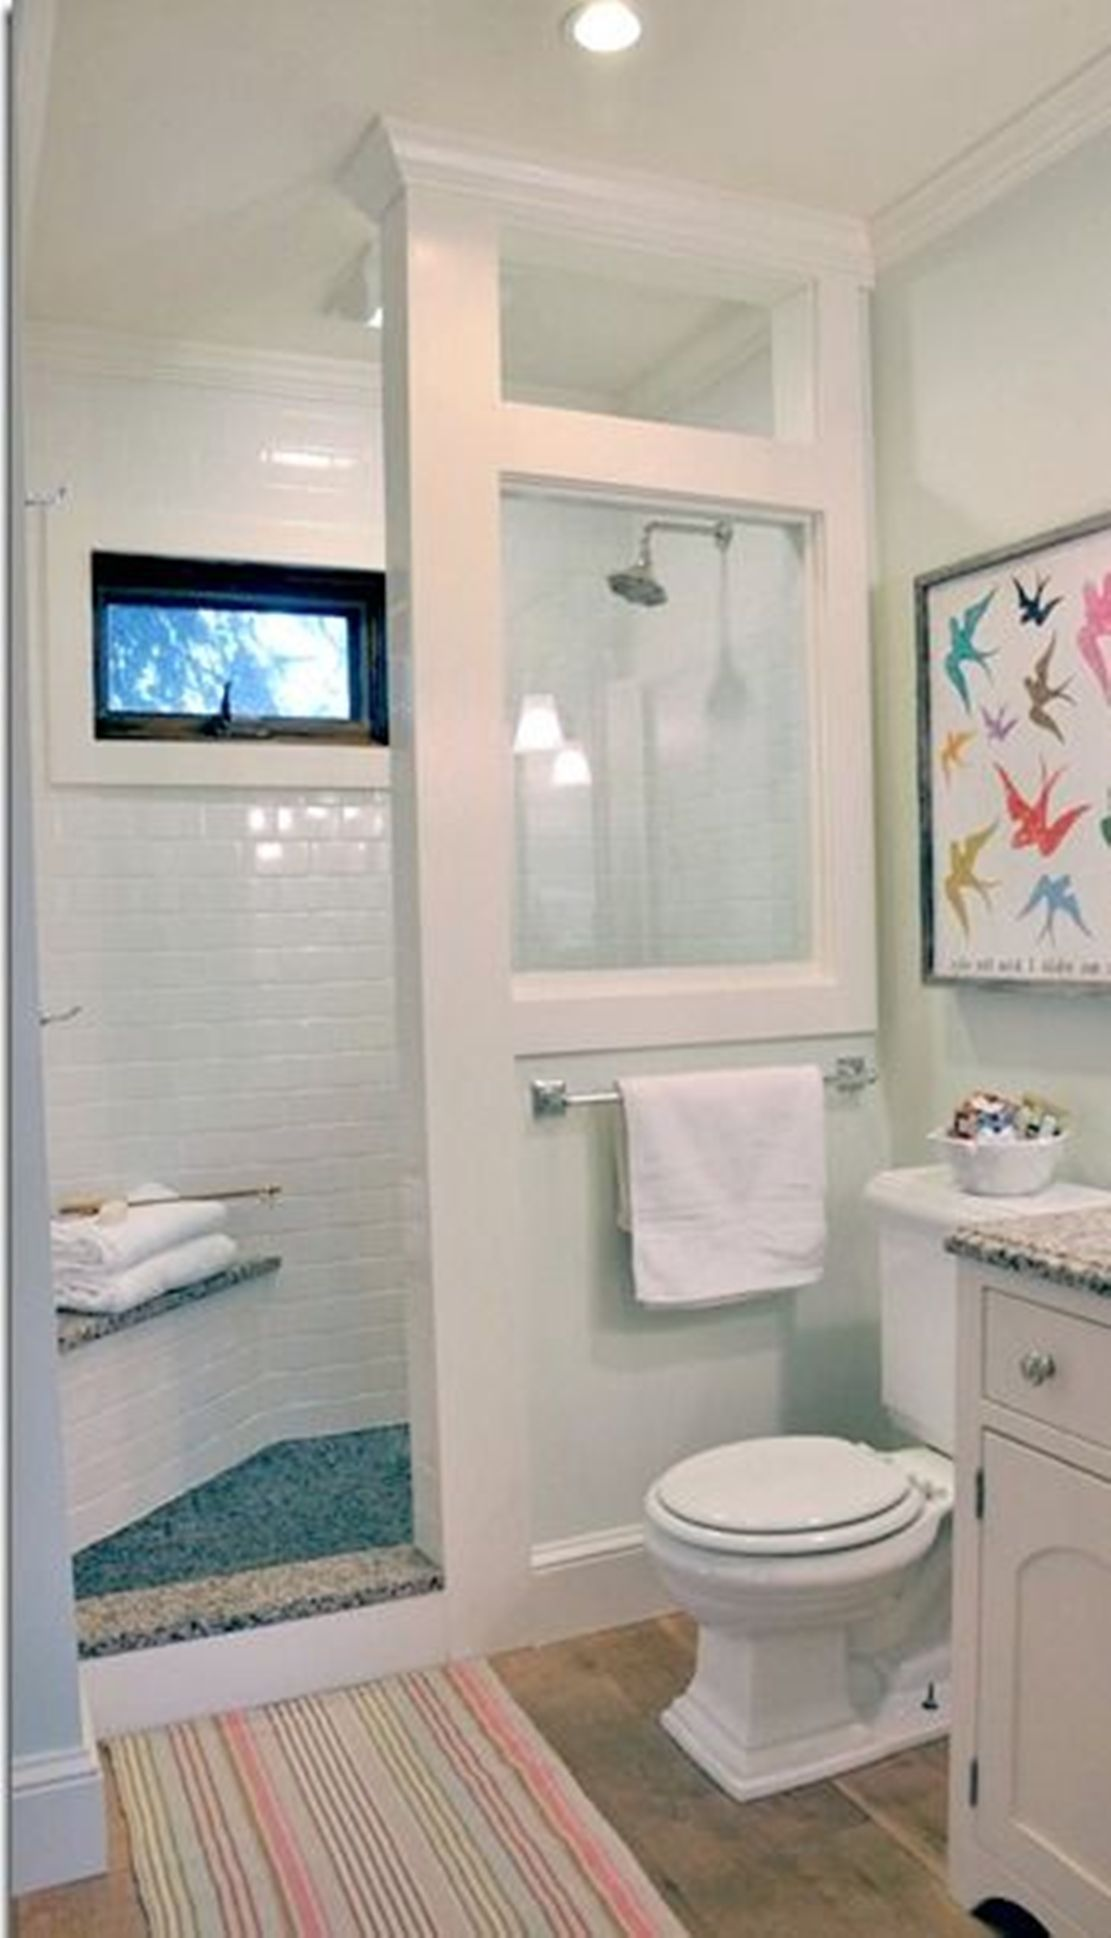 Bathroom Remodel With Walk In Shower bathroom , good small bathroom design ideas : small bathroom